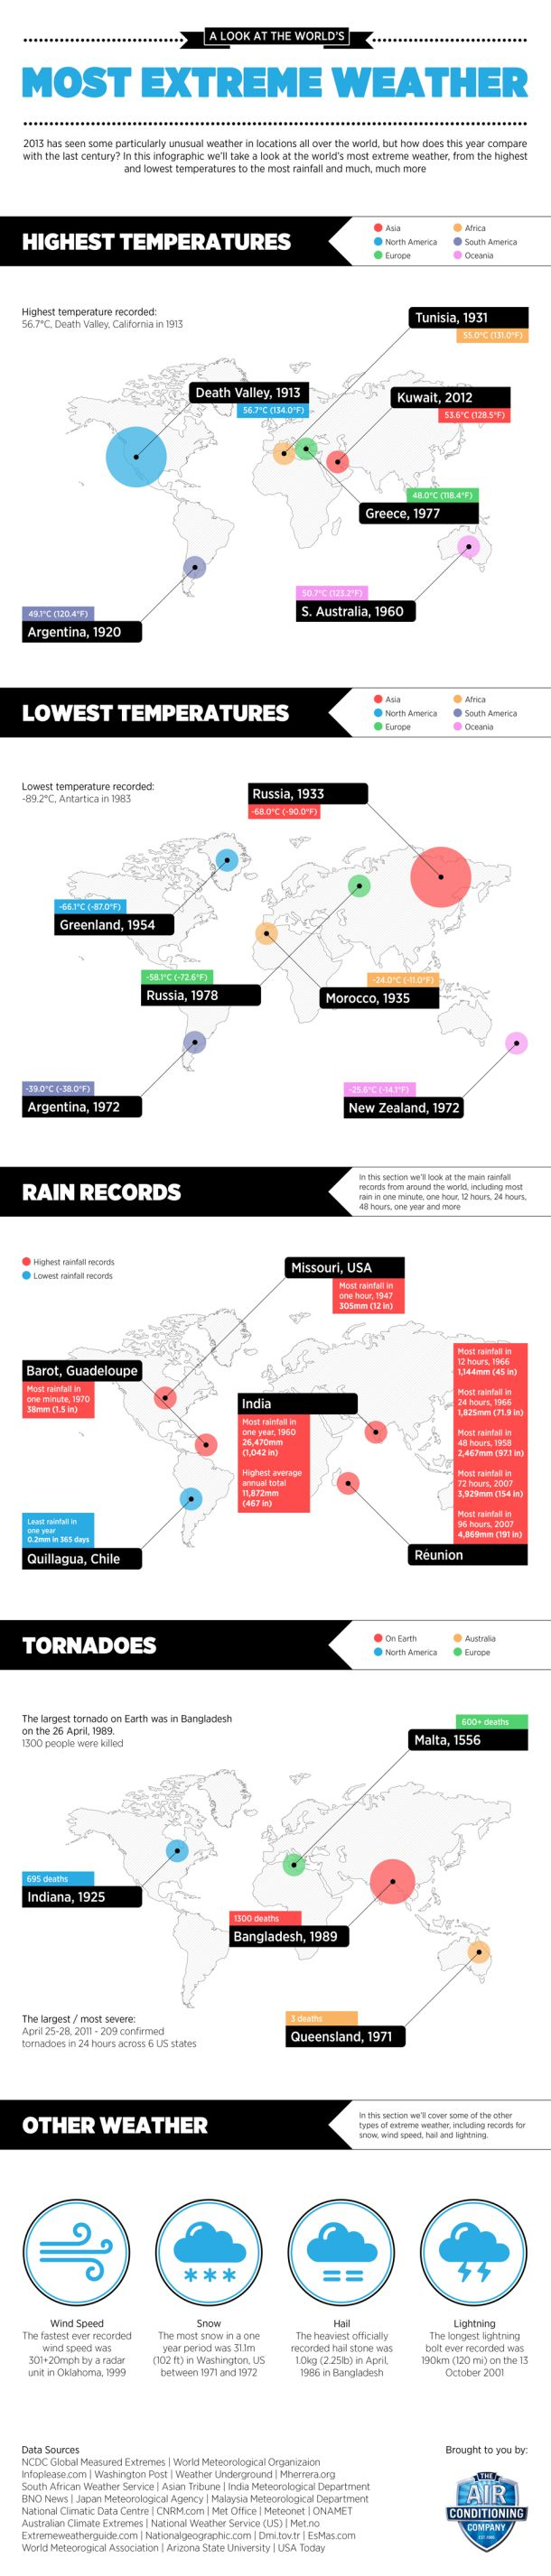 Best Ideas About Extreme Weather On Pinterest Storms - Usa extreme weather map